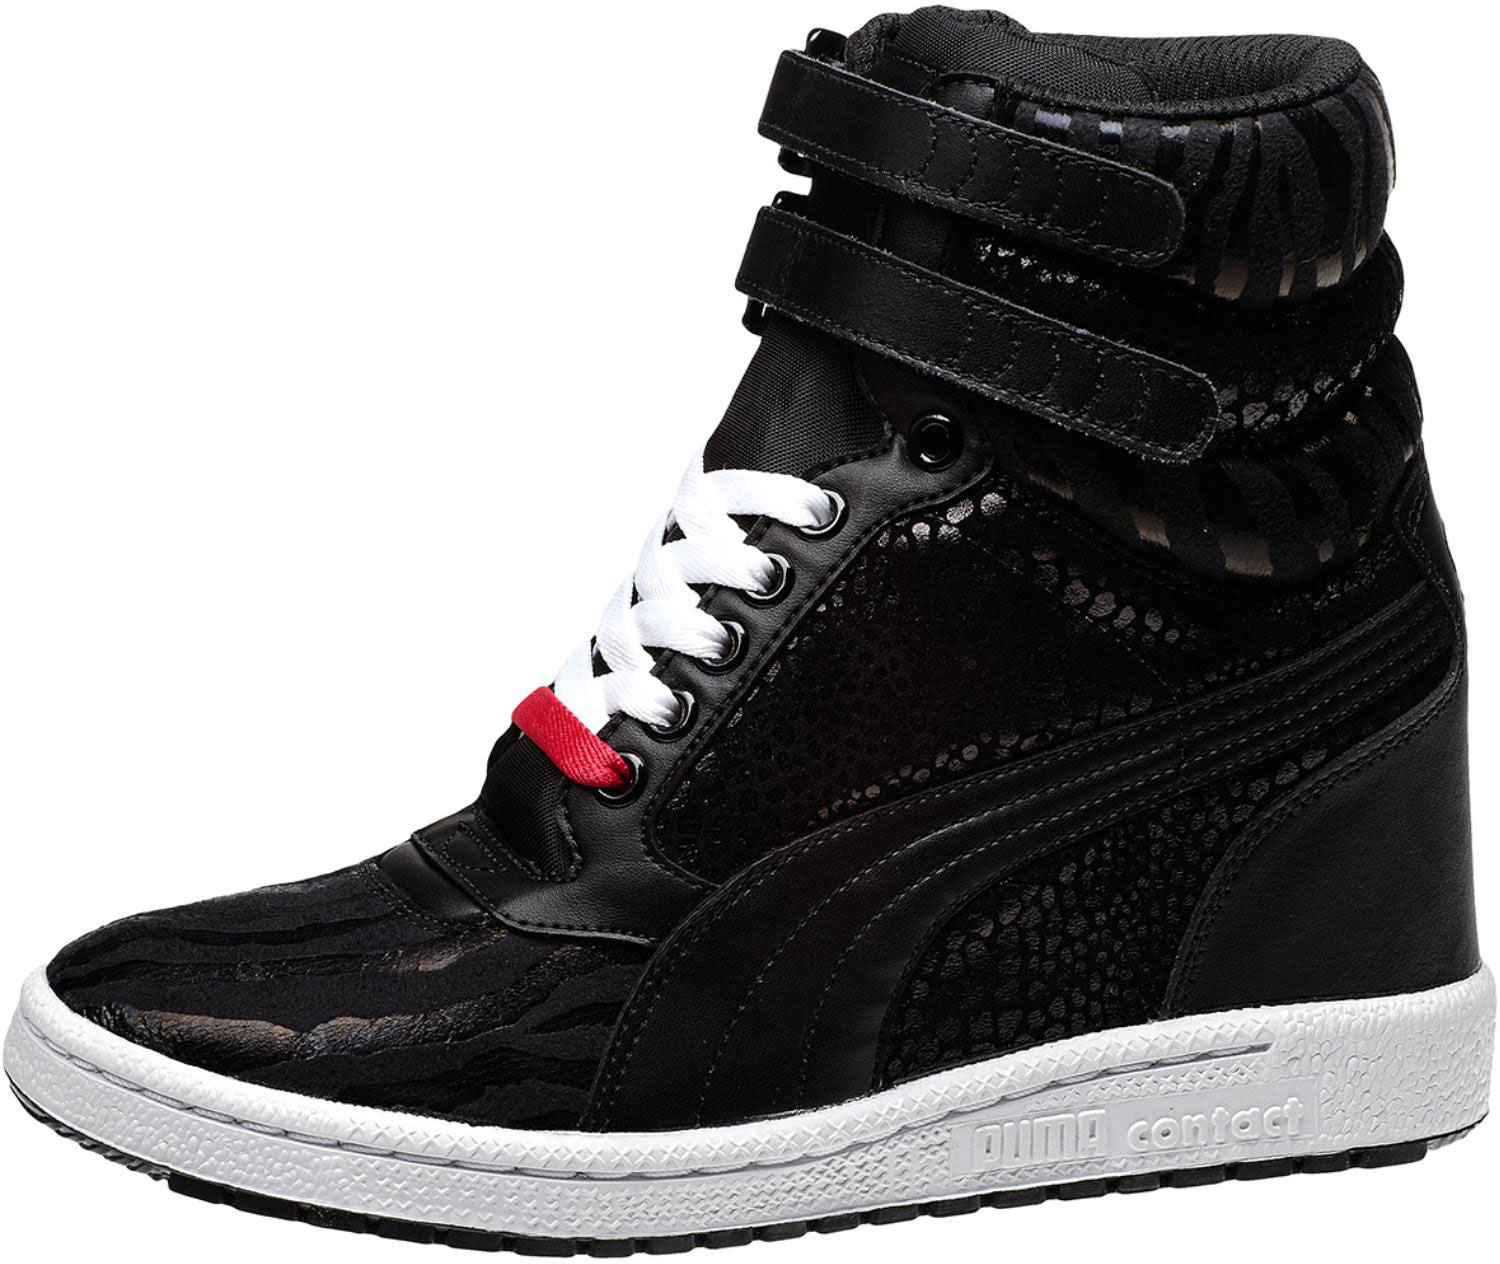 PUMA 'Sky Wedge Reptile' Sneaker | Sneakers, Shoes, Wedge